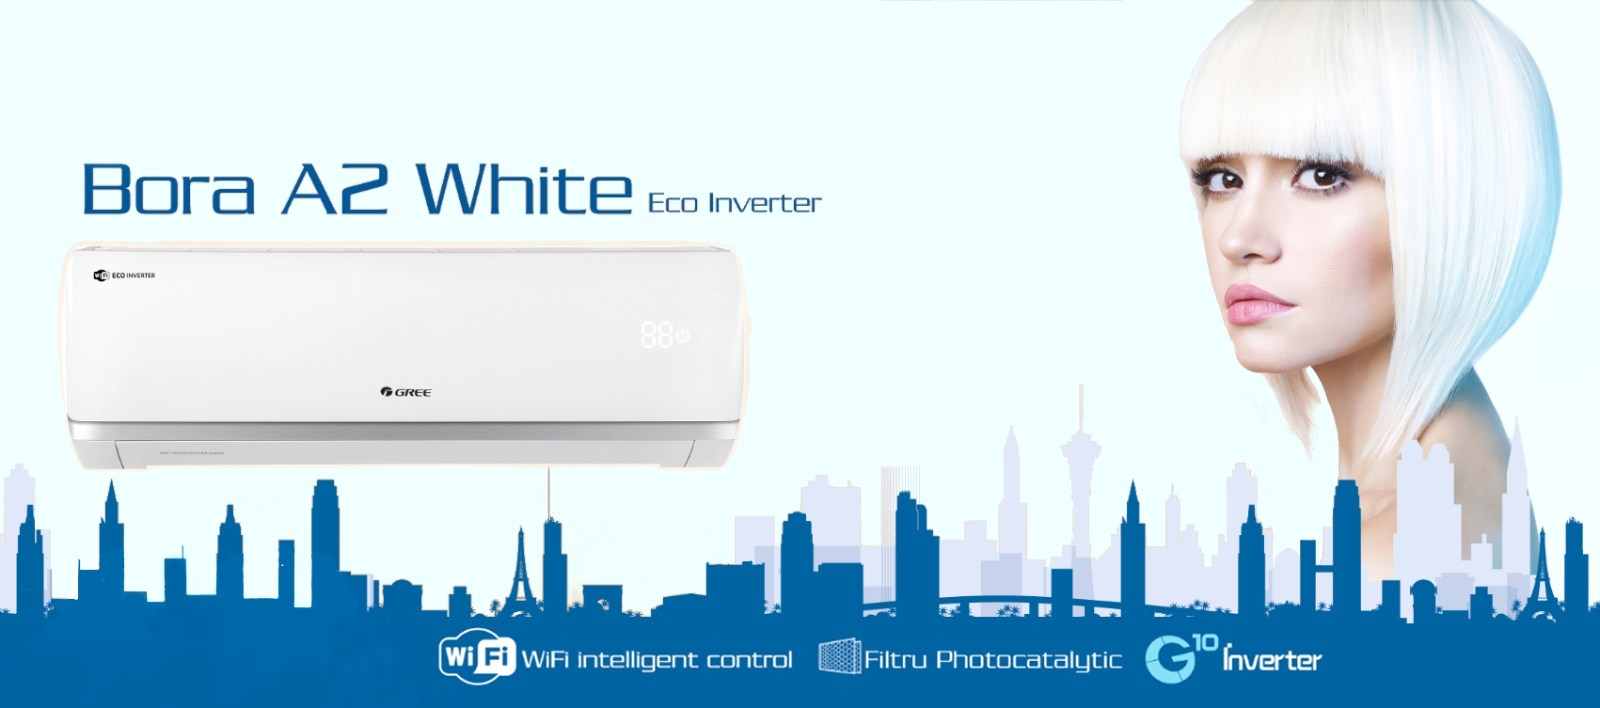 Gree Bora A2 White - aer conditionat